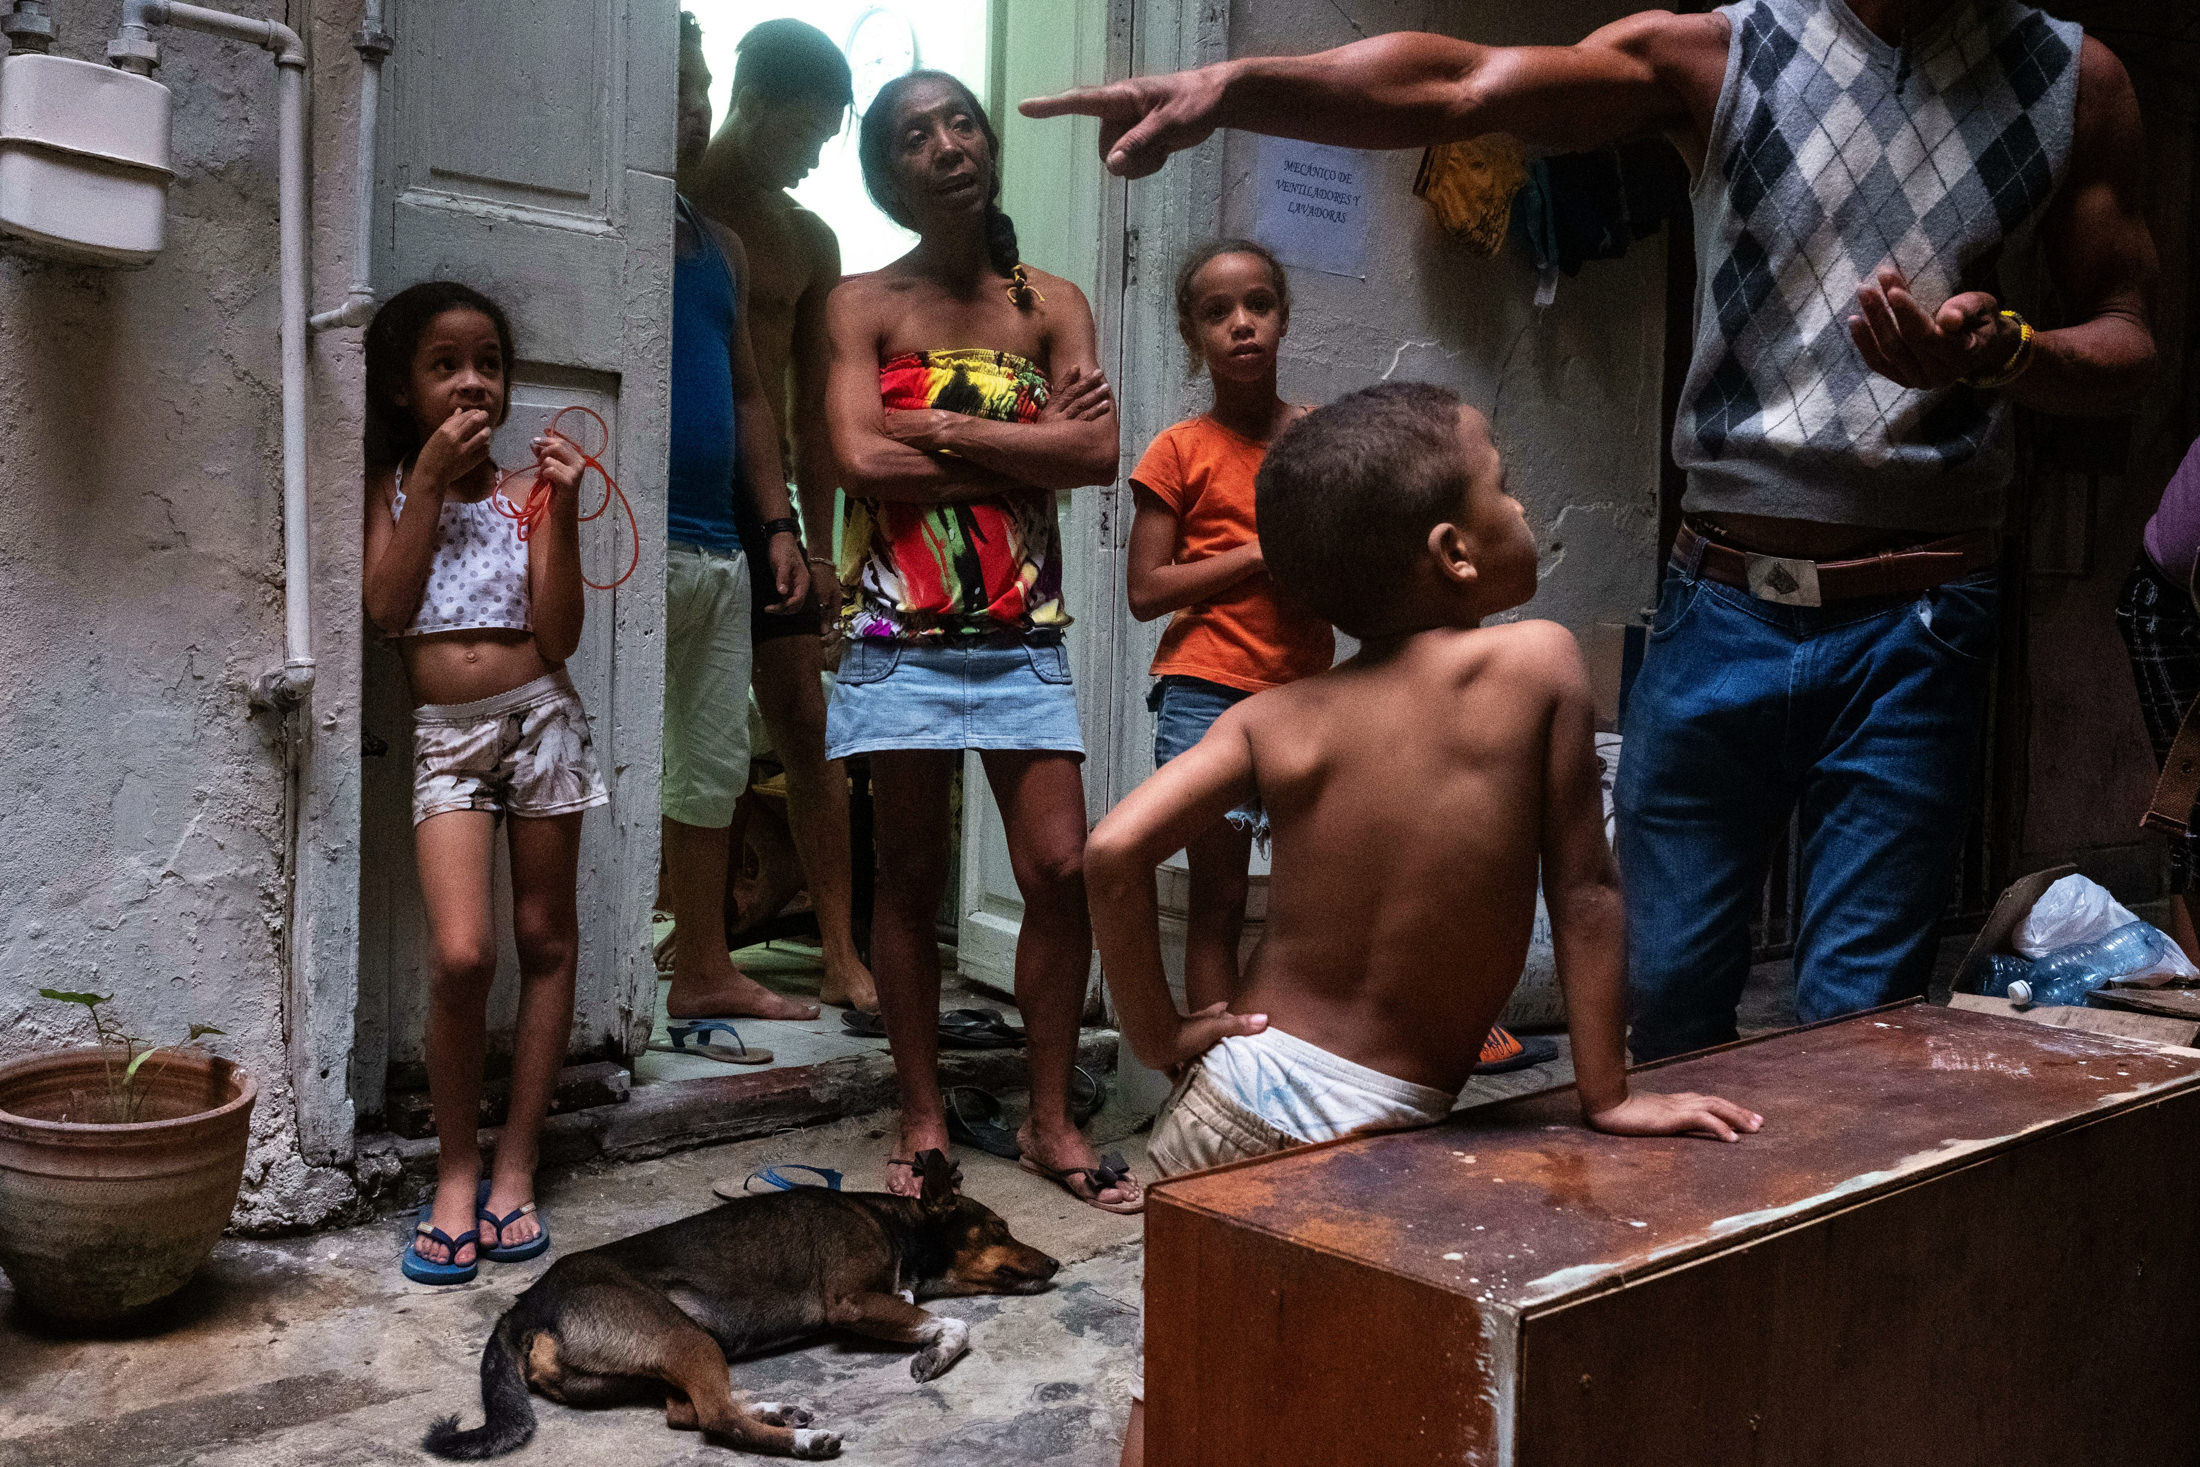 Cuban family in their house, man pointing and dog lying on ground